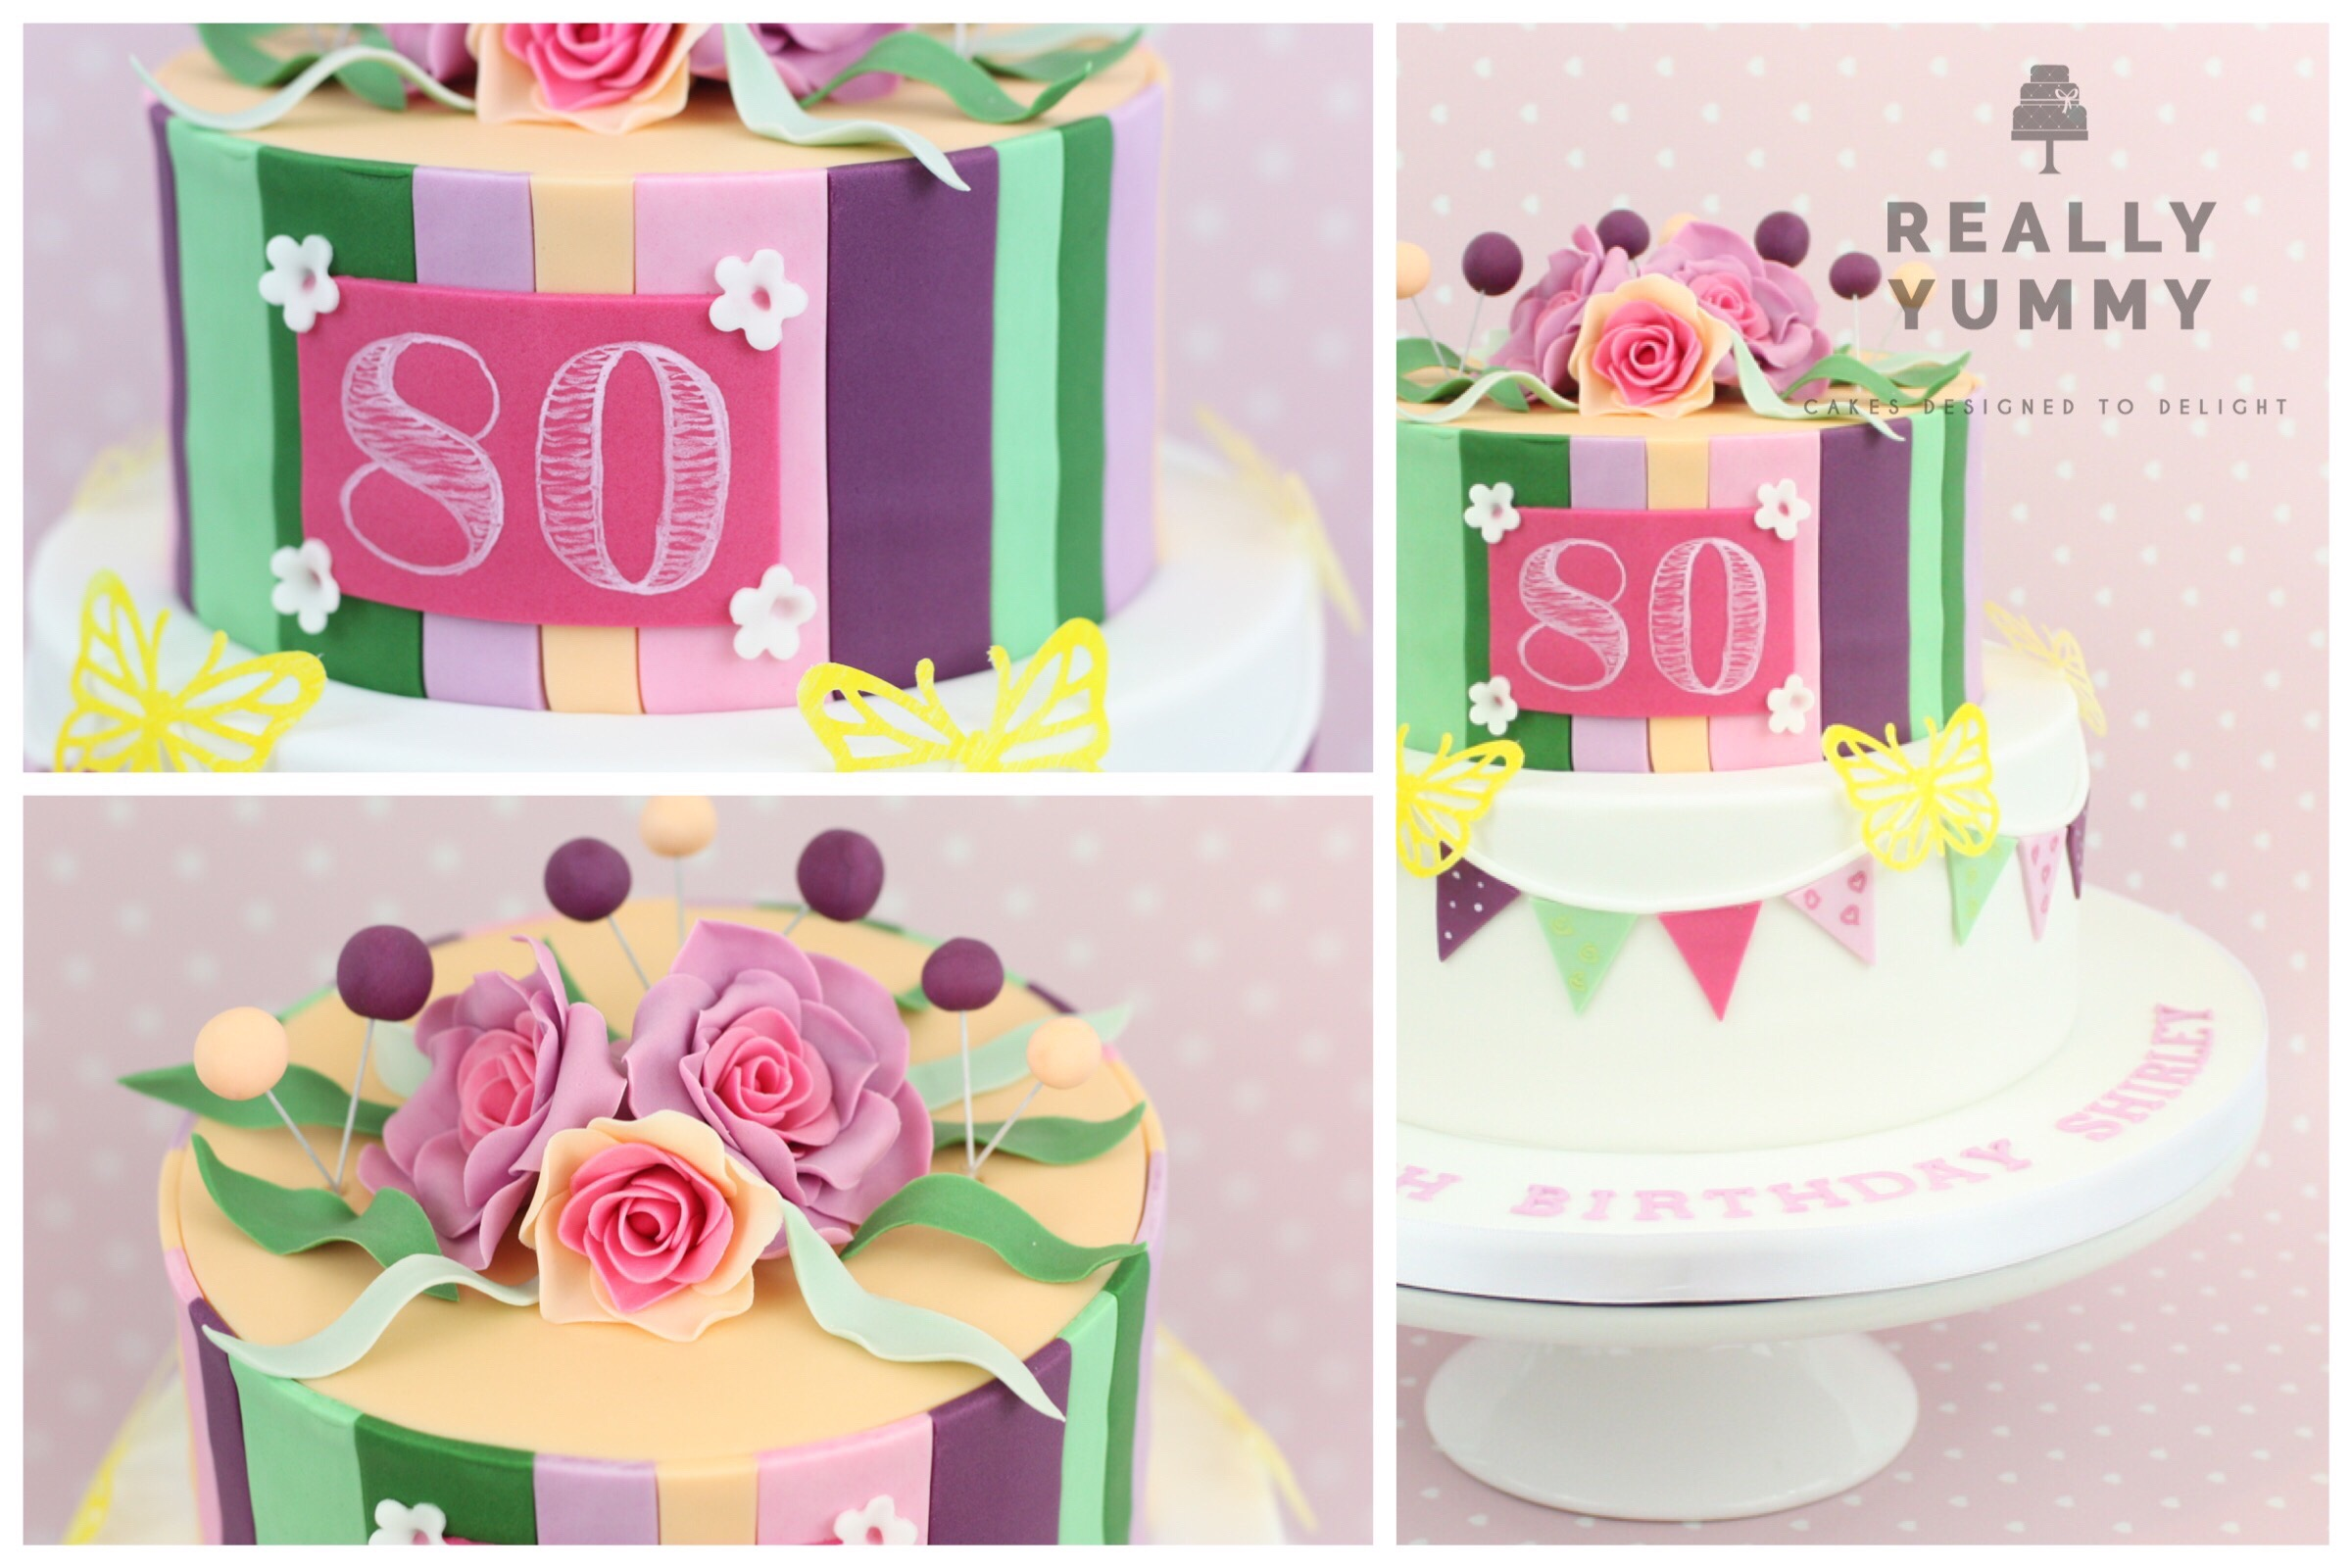 Bunting and flowers 80th birthday cake, in brights